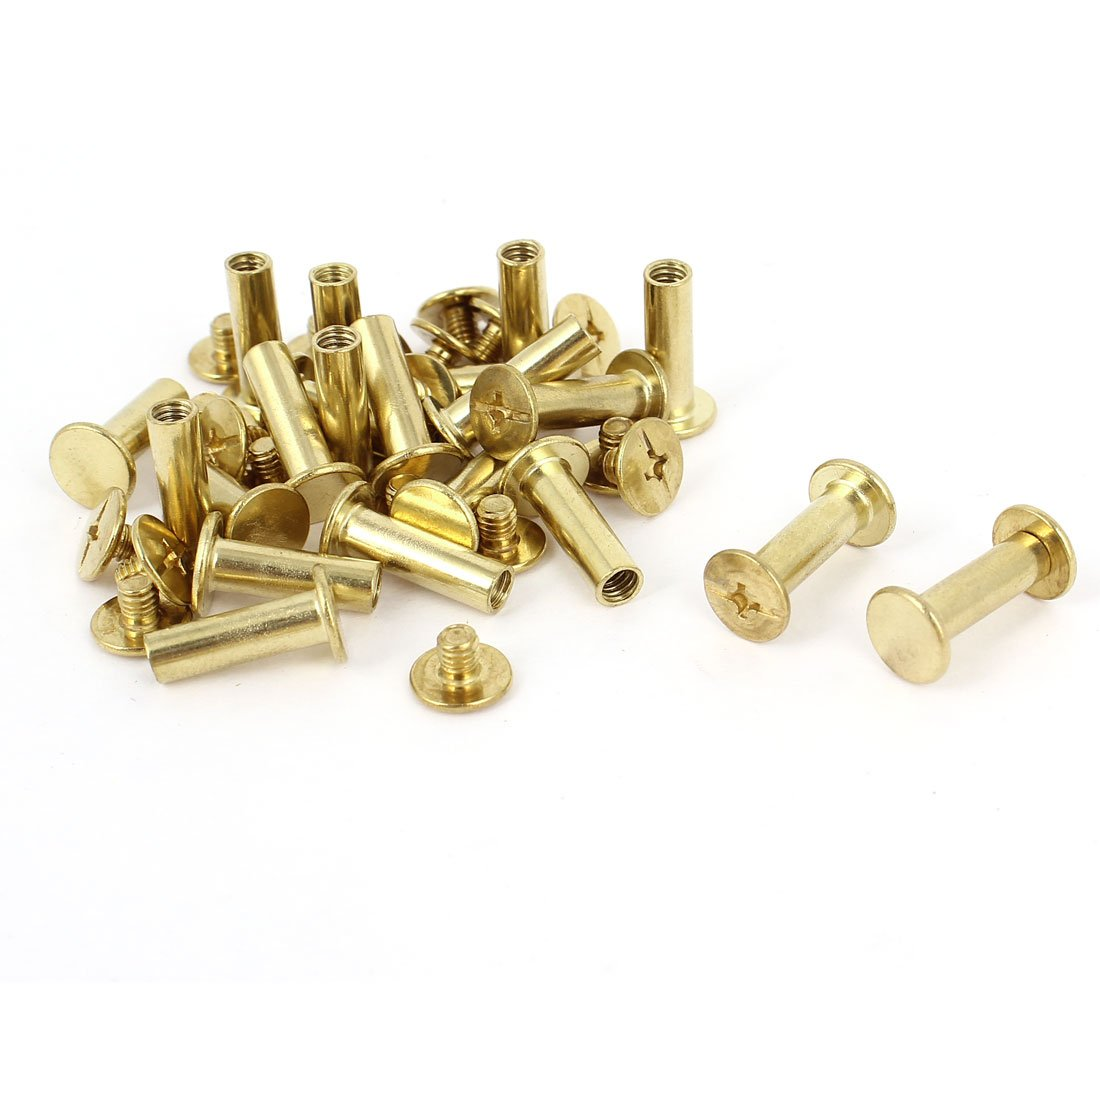 Dresselhaus 4.8 Countersunk Bolts with Slotted Head M 8 x 70 MM Galvanised Pack of 100